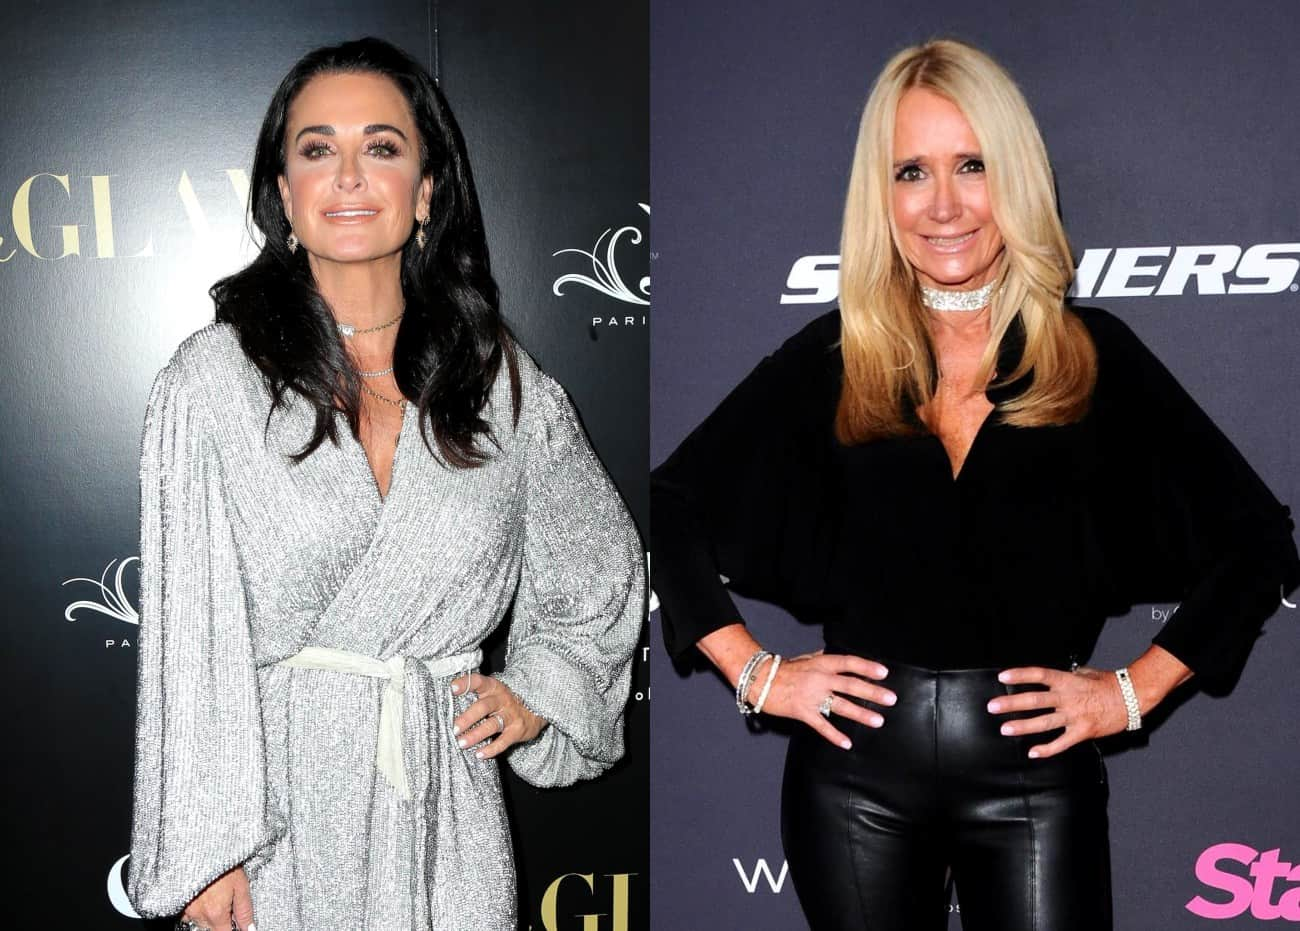 REPORT: RHOBH's Kyle Richards and Sister Kim Richards Aren't Speaking After 'Heated Argument' Following Kim's Alleged Breakdown and Hospitalization